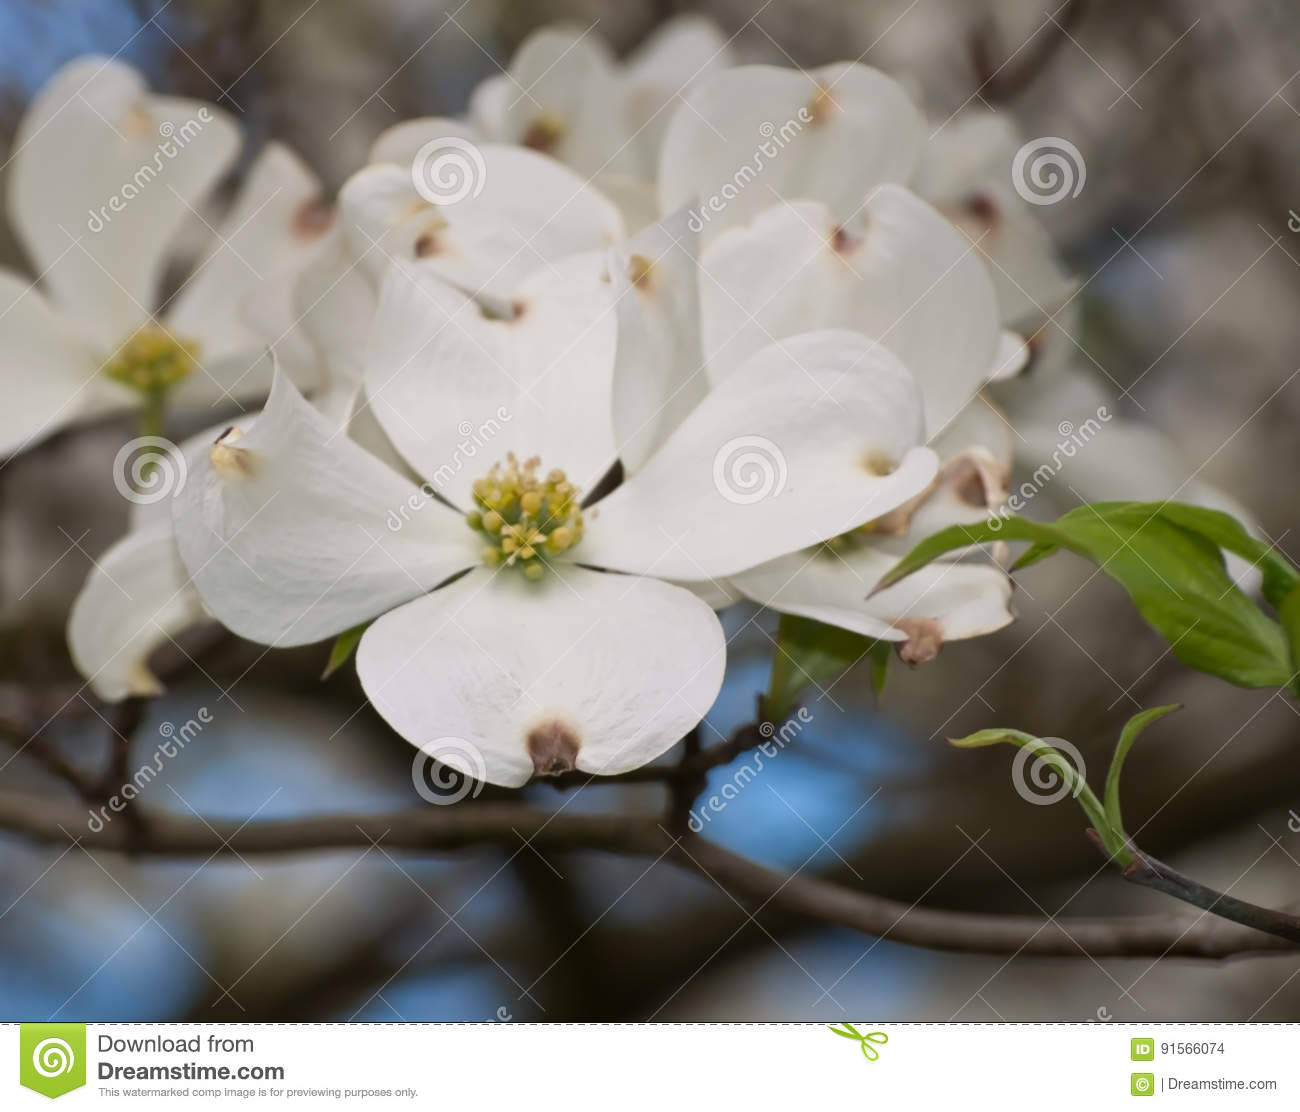 A Grouping Of White Dogwood Flowers Stock Photo Image Of Flower